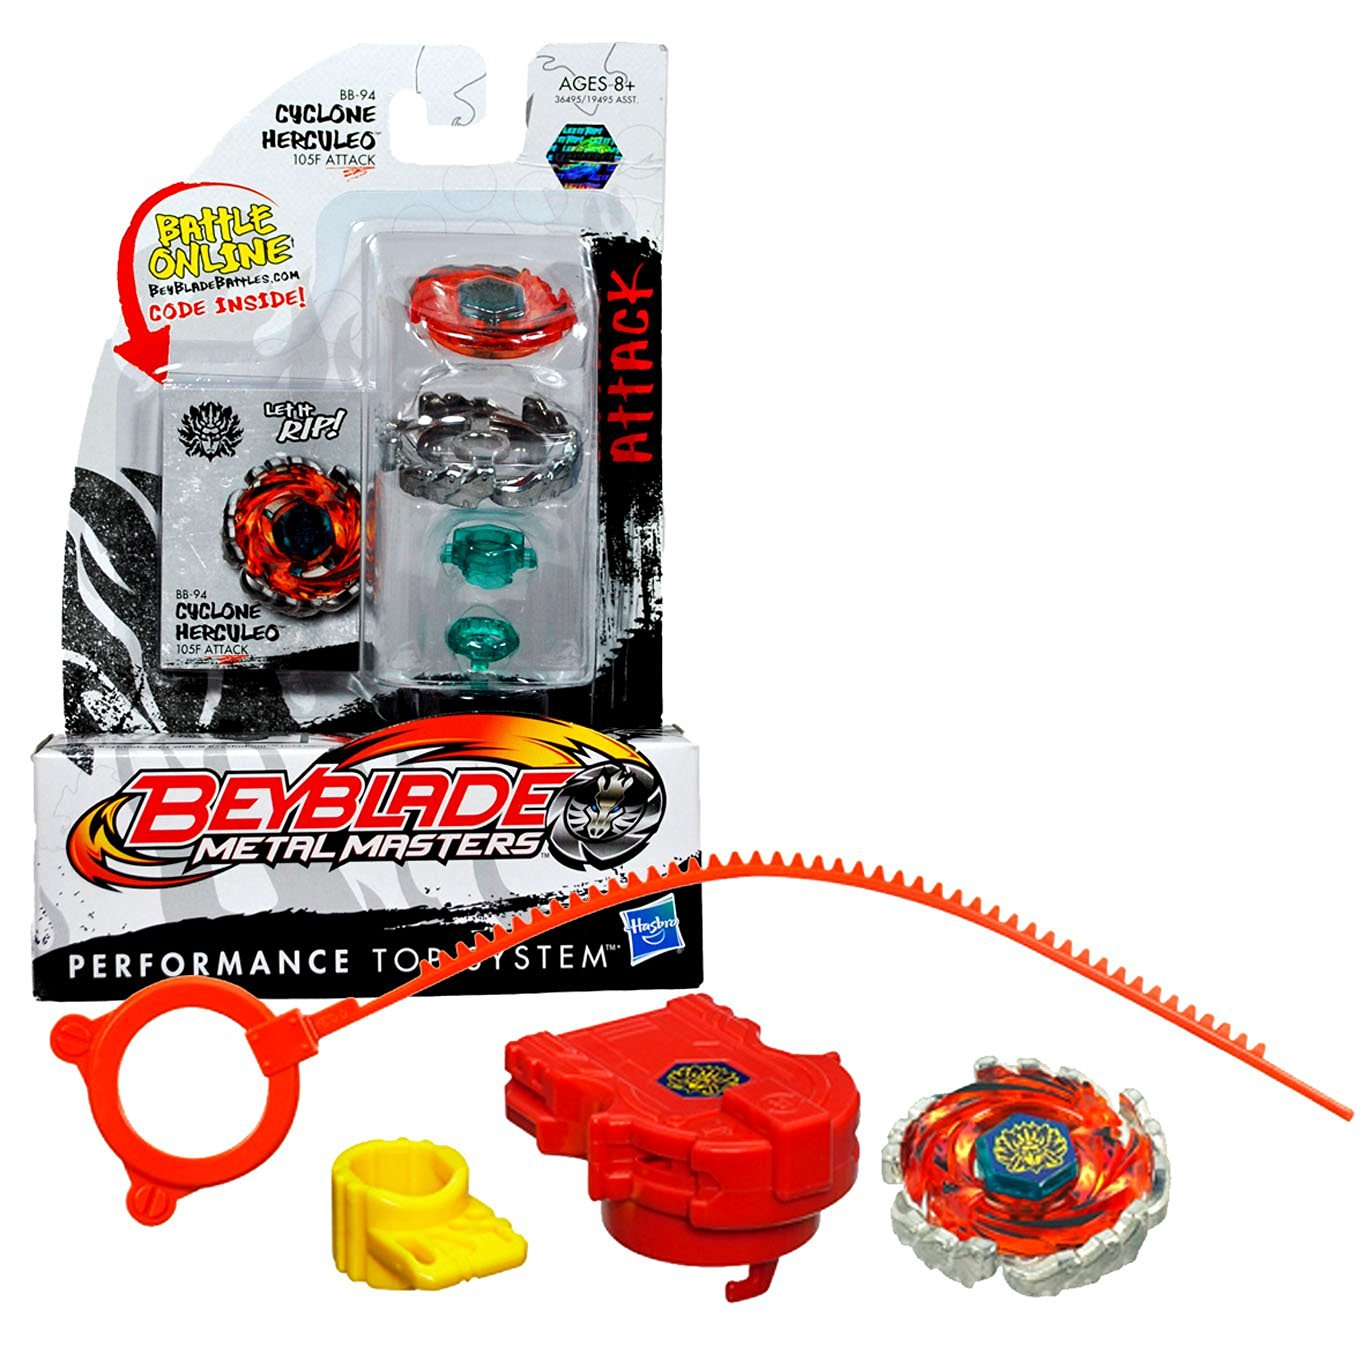 Hasbro Year 2011 Beyblade Metal Masters High Performance Battle Tops - Attack 105F BB-94 CYCLONE HERCULEO with Face Bolt, Herculeo Energy Ring, Cyclone Fusion Wheel, 105 Spin Track, F Performance Tip and Ripcord Launcher Plus Online Code